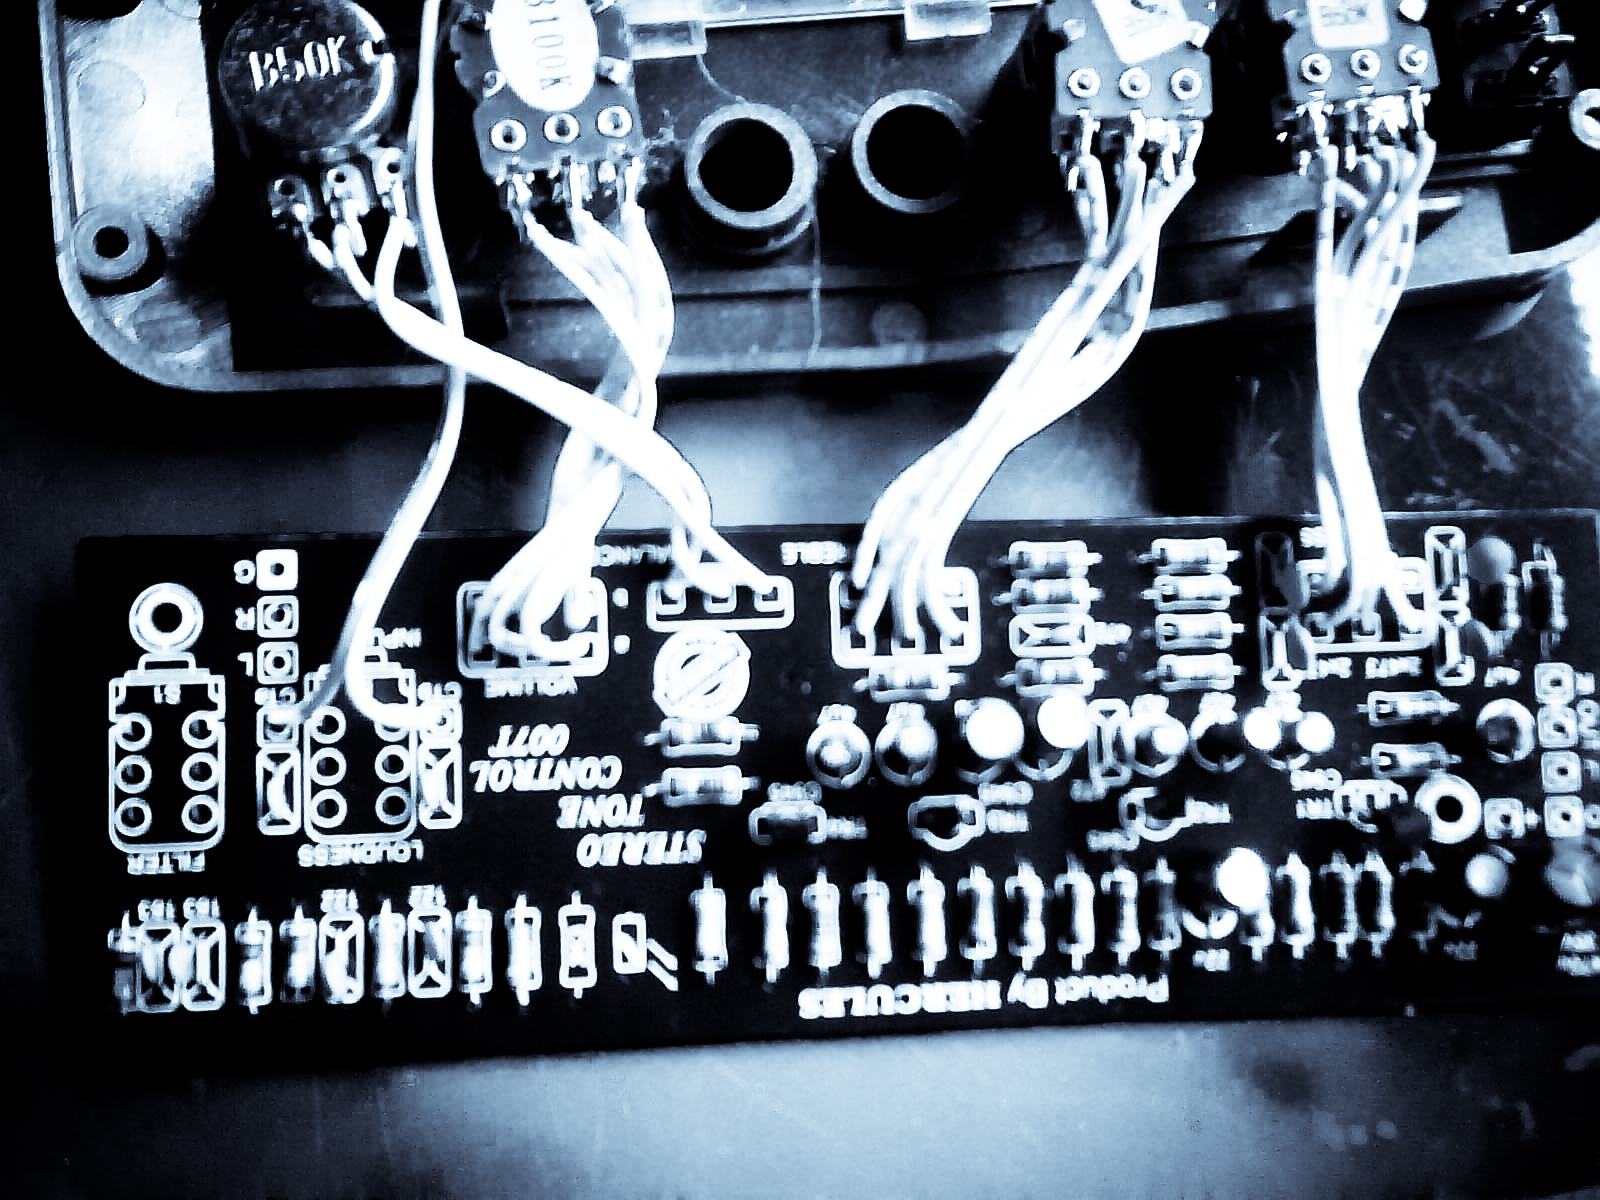 Stereo Tone Control Circuit Diagram T Lm1040 Design Electronic Project With Filter Bass Treble